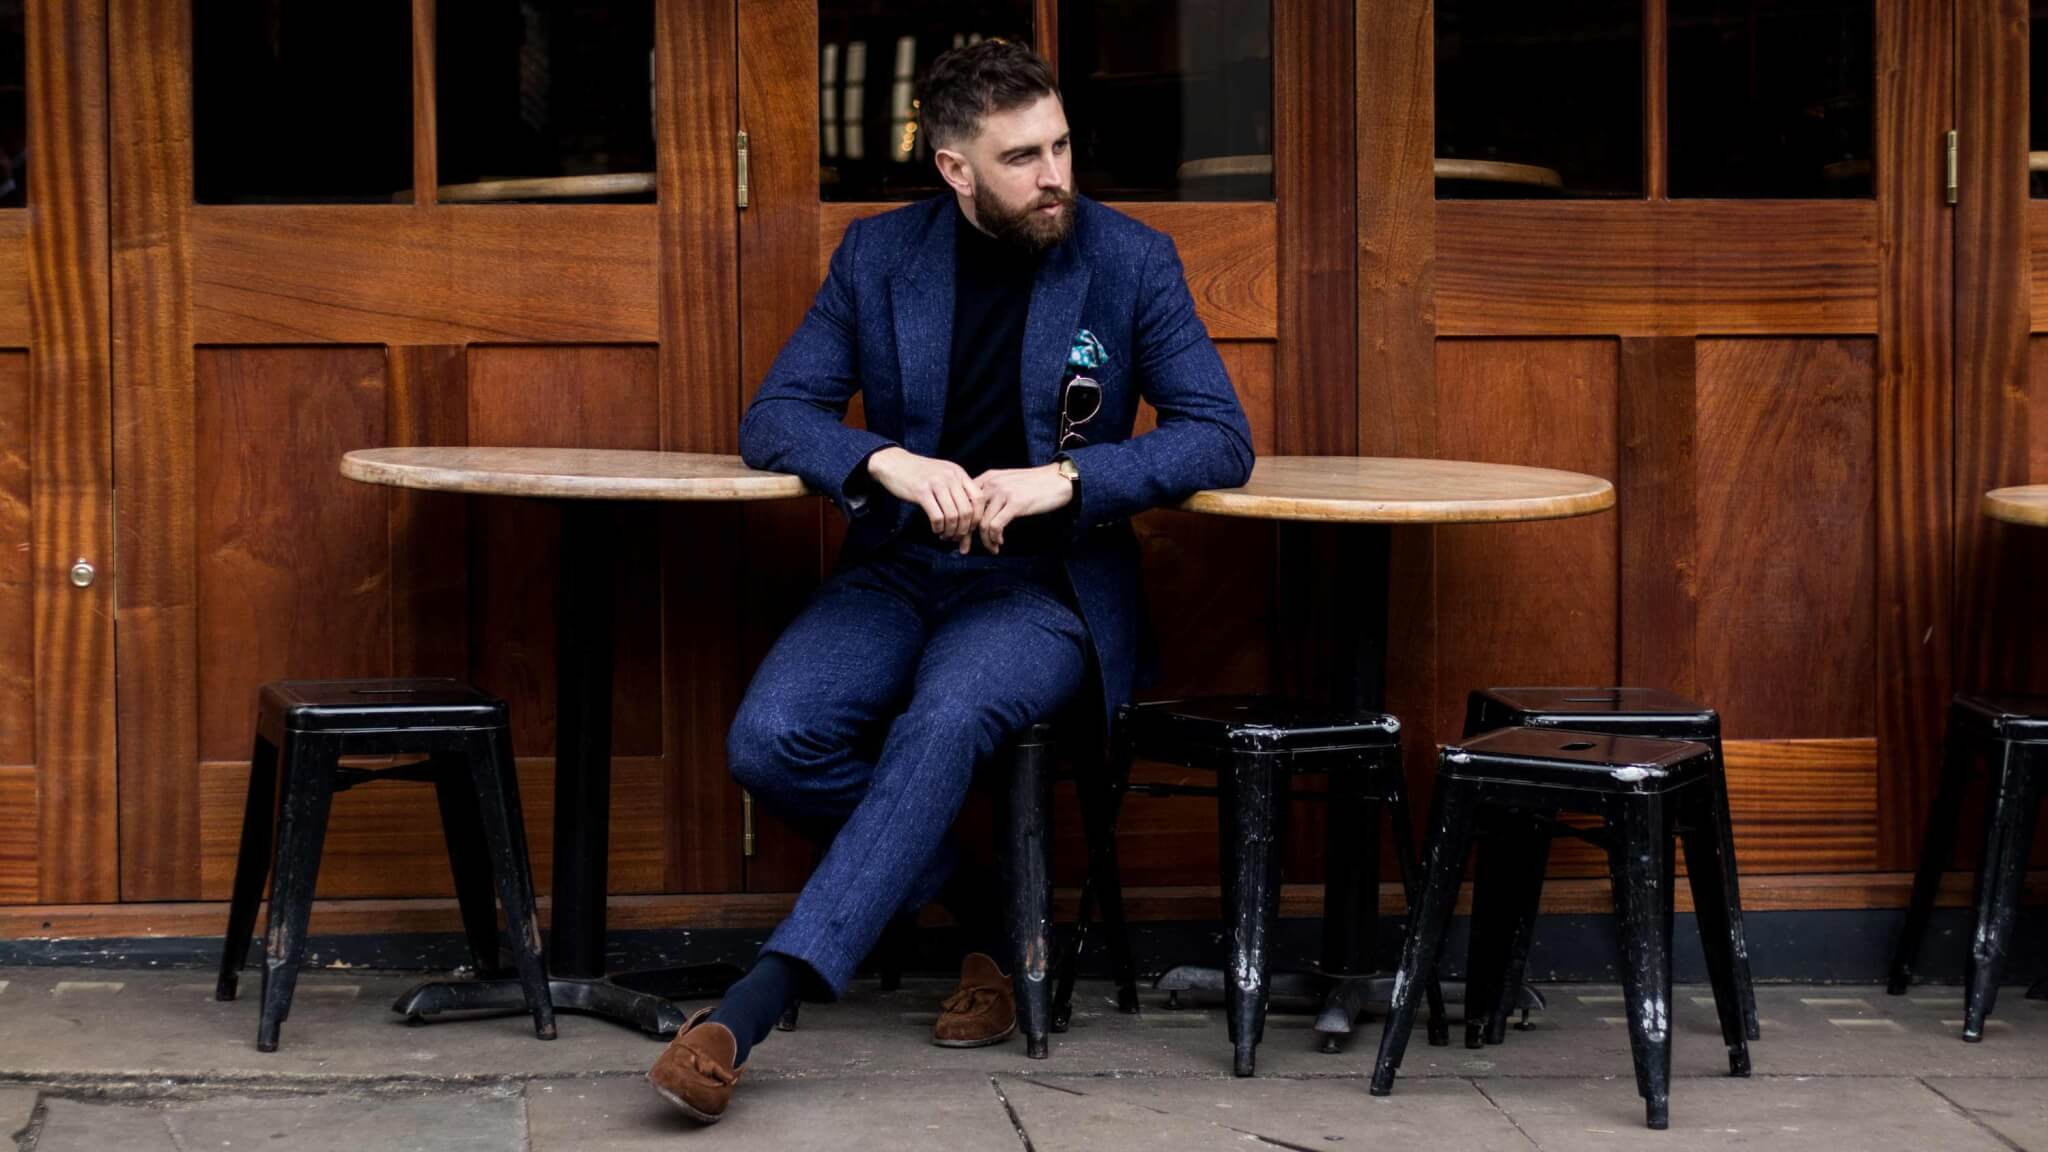 Bespoke Suit for Work